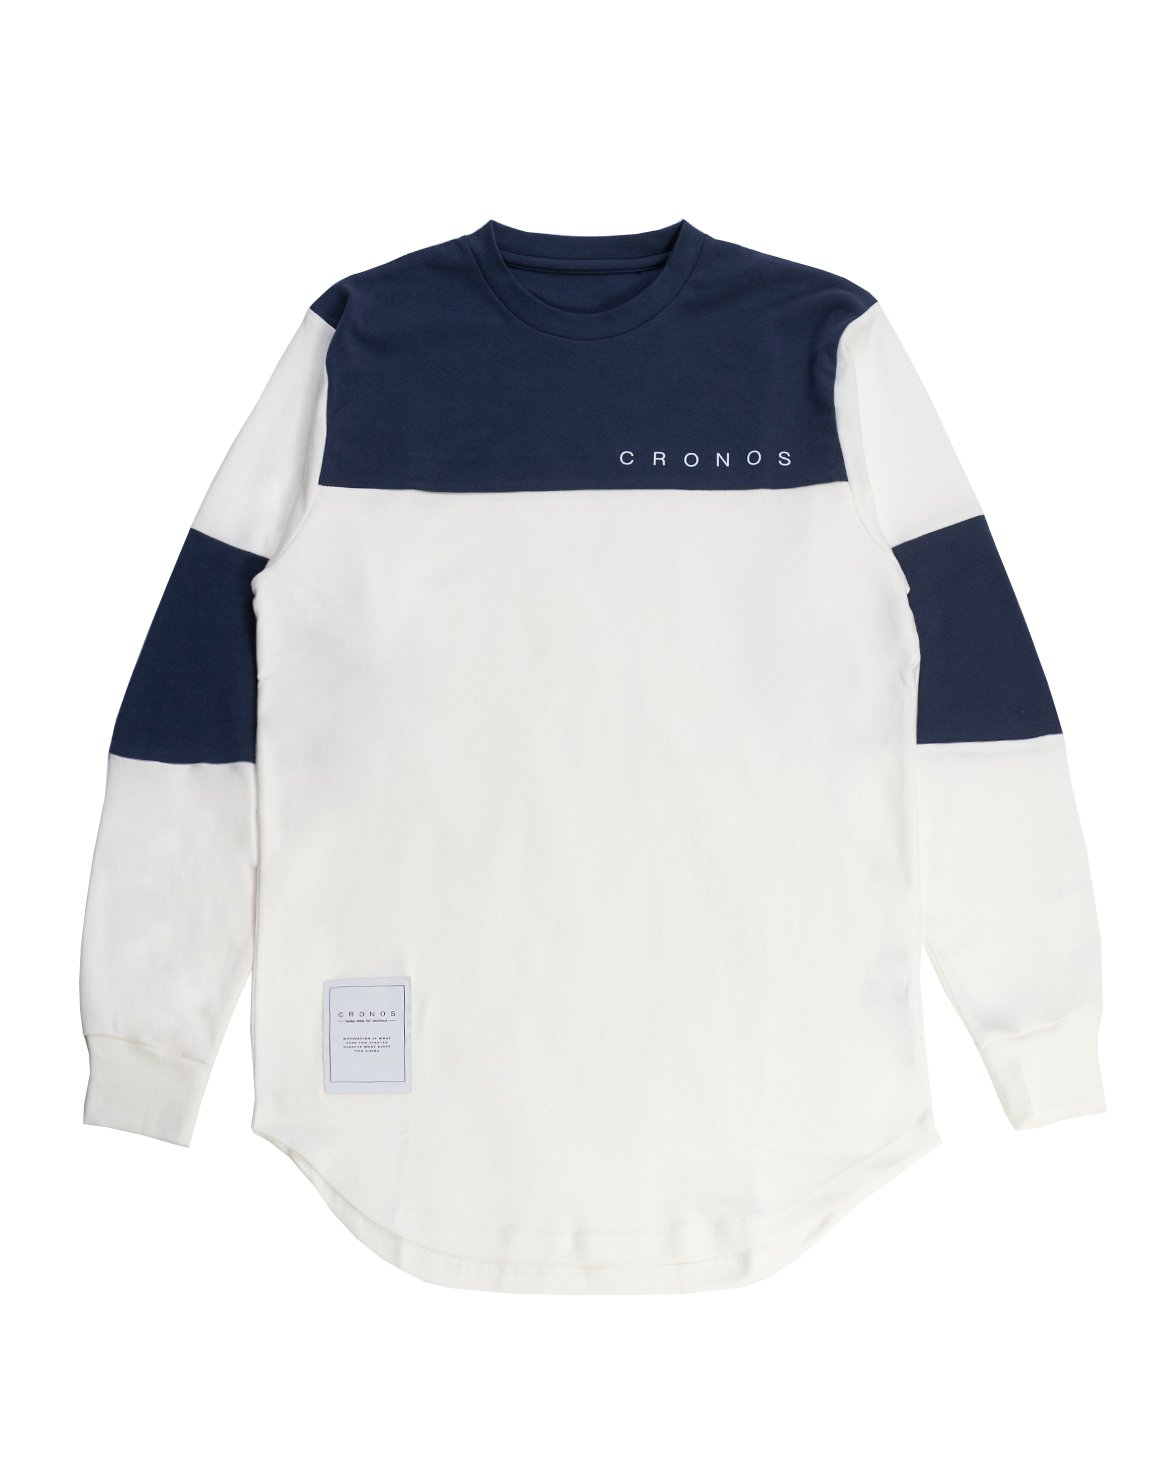 <img class='new_mark_img1' src='https://img.shop-pro.jp/img/new/icons55.gif' style='border:none;display:inline;margin:0px;padding:0px;width:auto;' />CRONOS NEW BICOLOR  LONG SLEEVE【WHITE×NAVY】